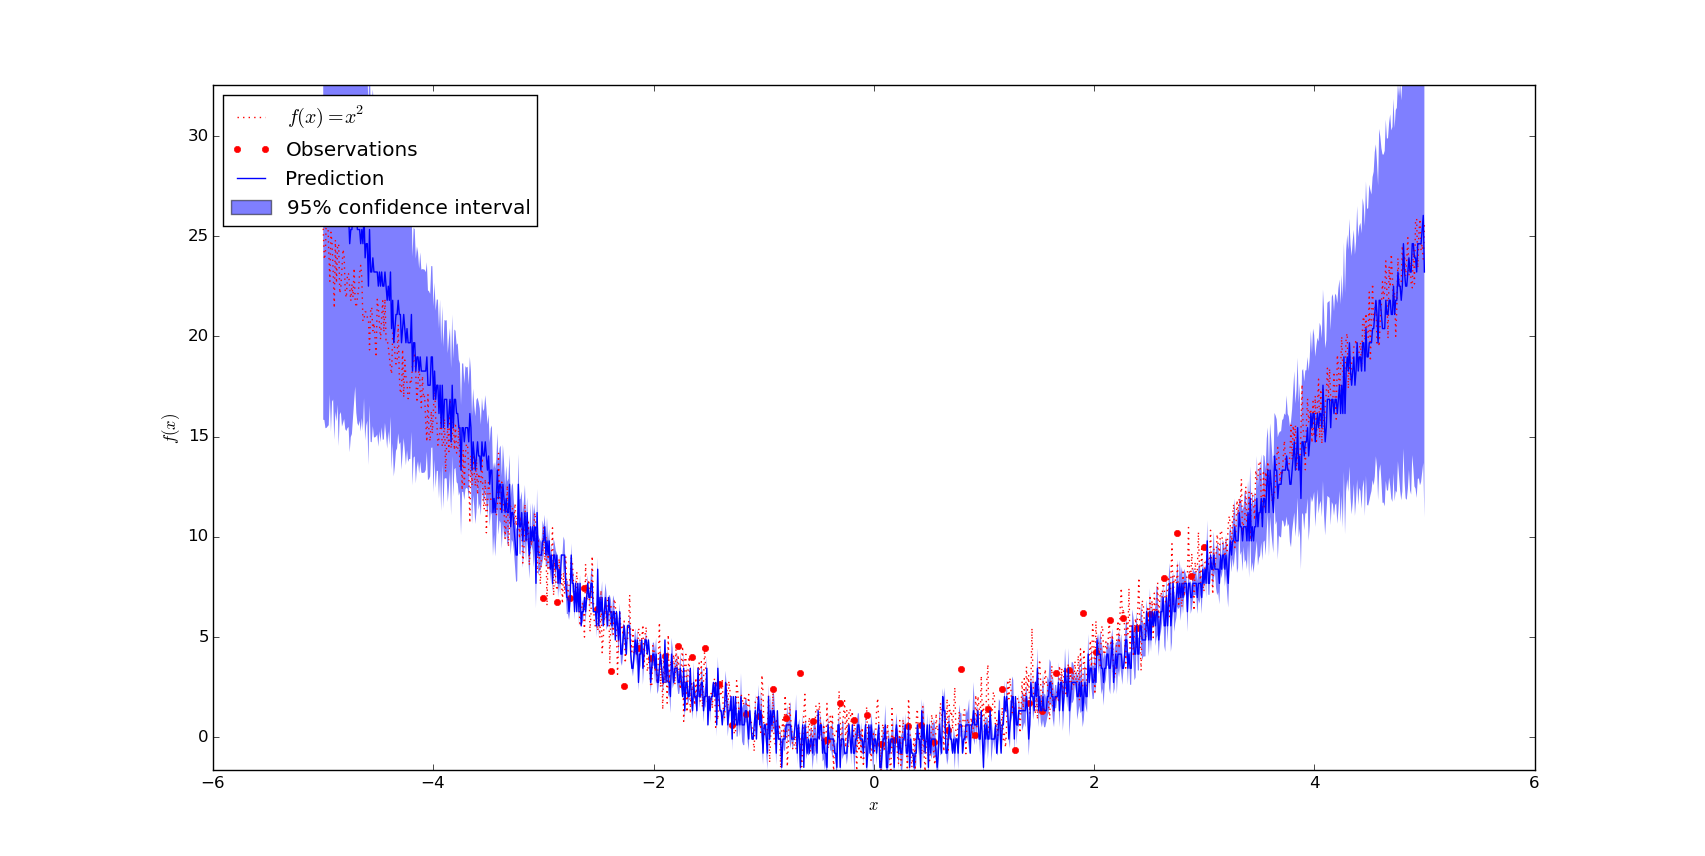 f(x) = x^2 with gaussian noise